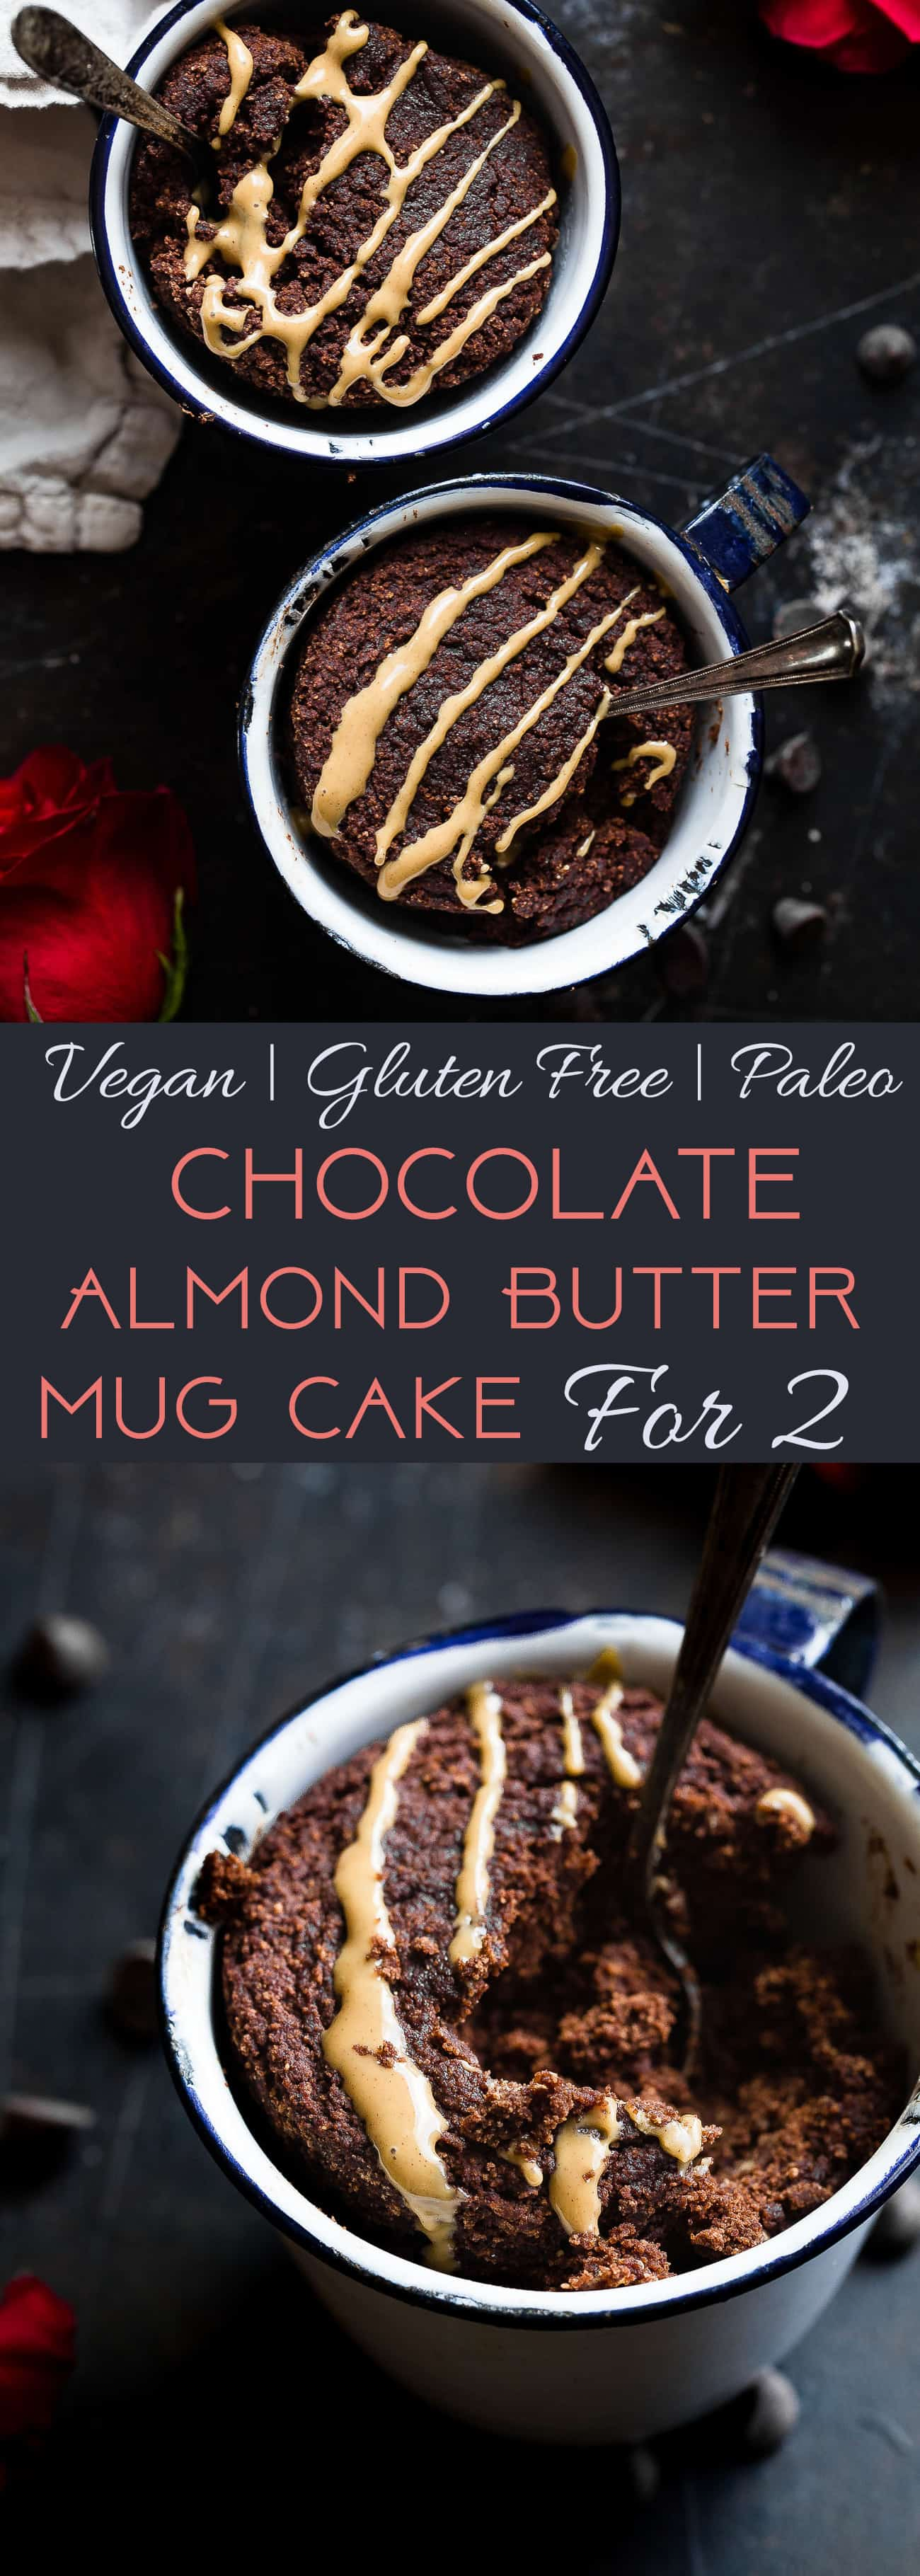 Paleo Chocolate Almond Butter Mug Cakes for Two - A gluten/grain/dairy/sugar free treat that is vegan friendly, ready in 10 minutes and better for you! A healthy dessert at its best! | #Foodfaithfitness | #paleo #vegan #glutenfree #mugcake #chocolate